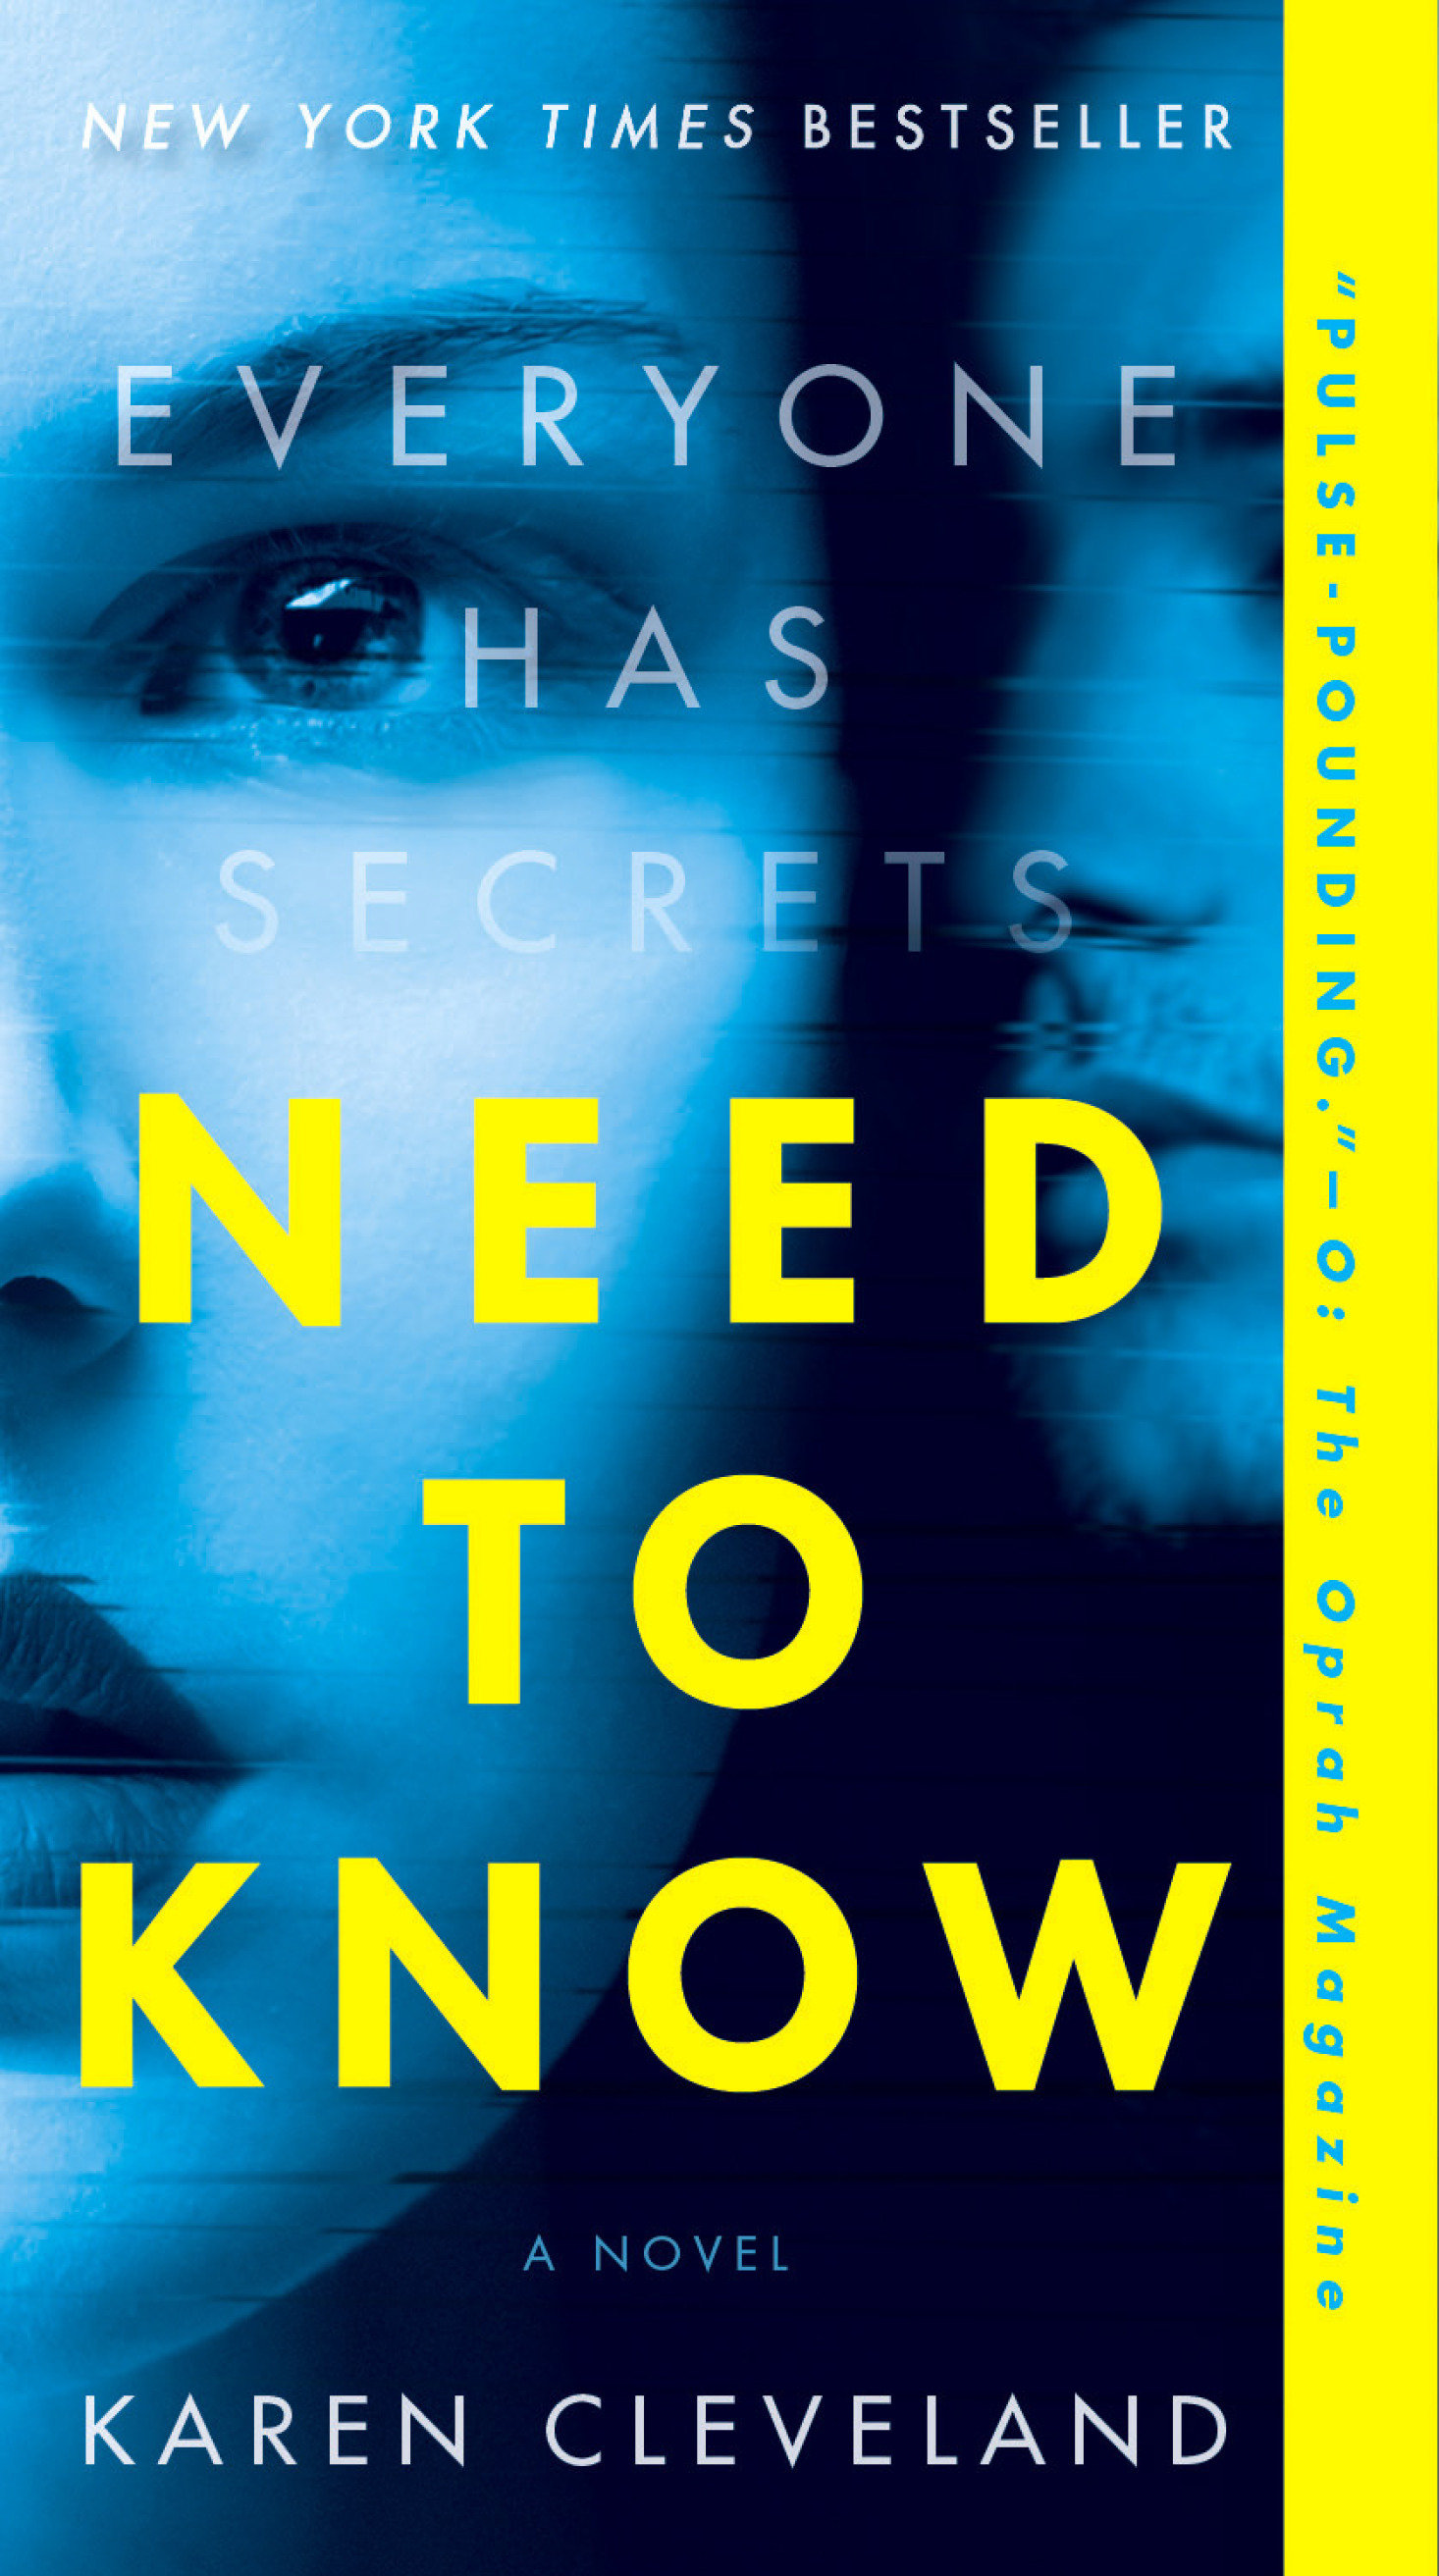 Need to Know A Novel